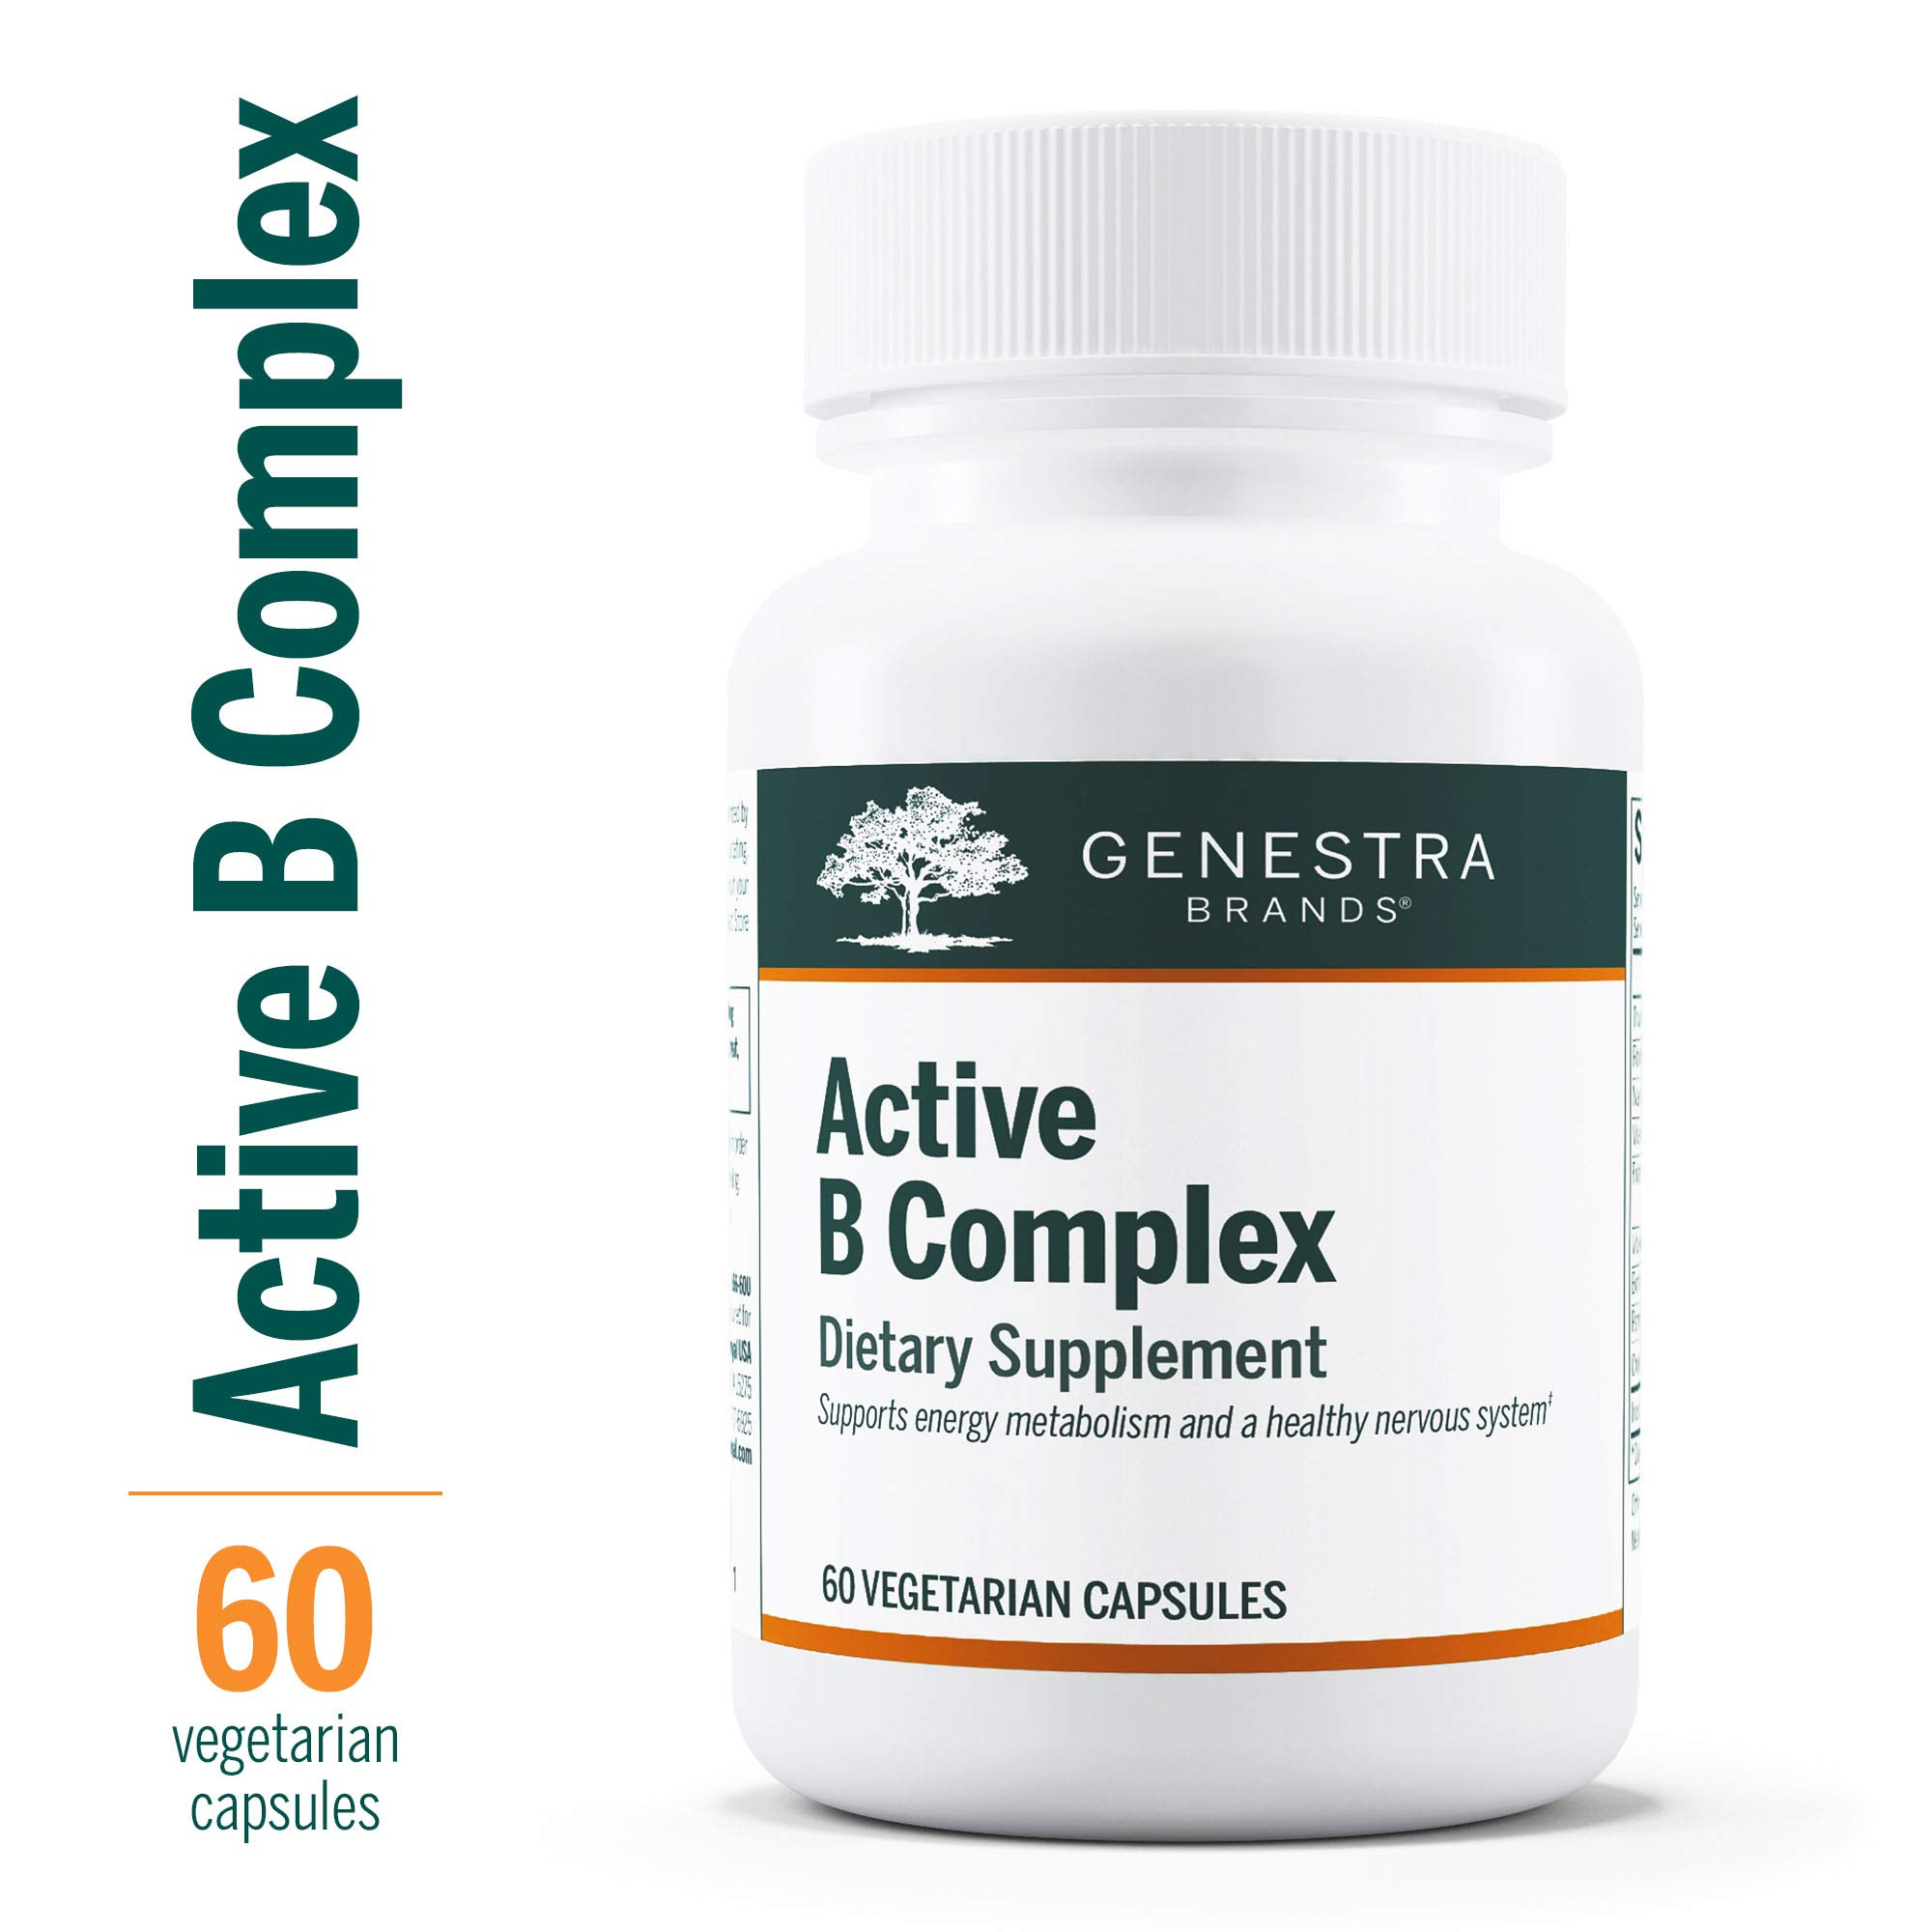 Genestra Brands - Active B Complex - Complete B Vitamin Complex Supplement - 60 Capsules by Genestra Brands